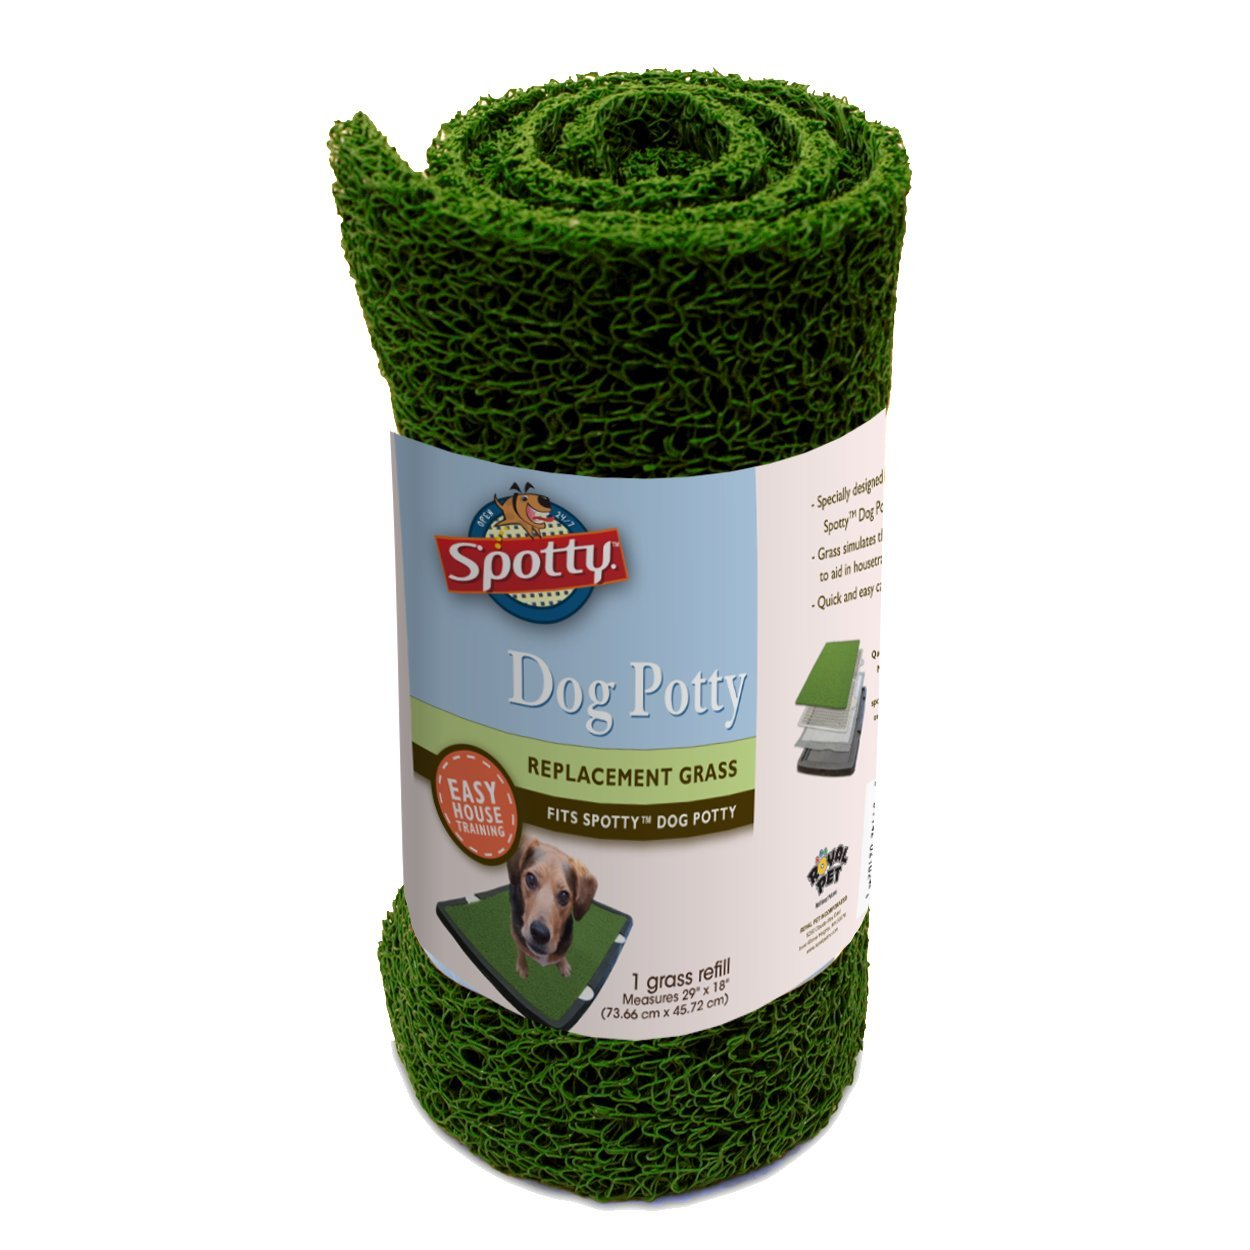 Spotty Indoor Dog Potty Replacement Grass Royal Pet Incorporated 2102